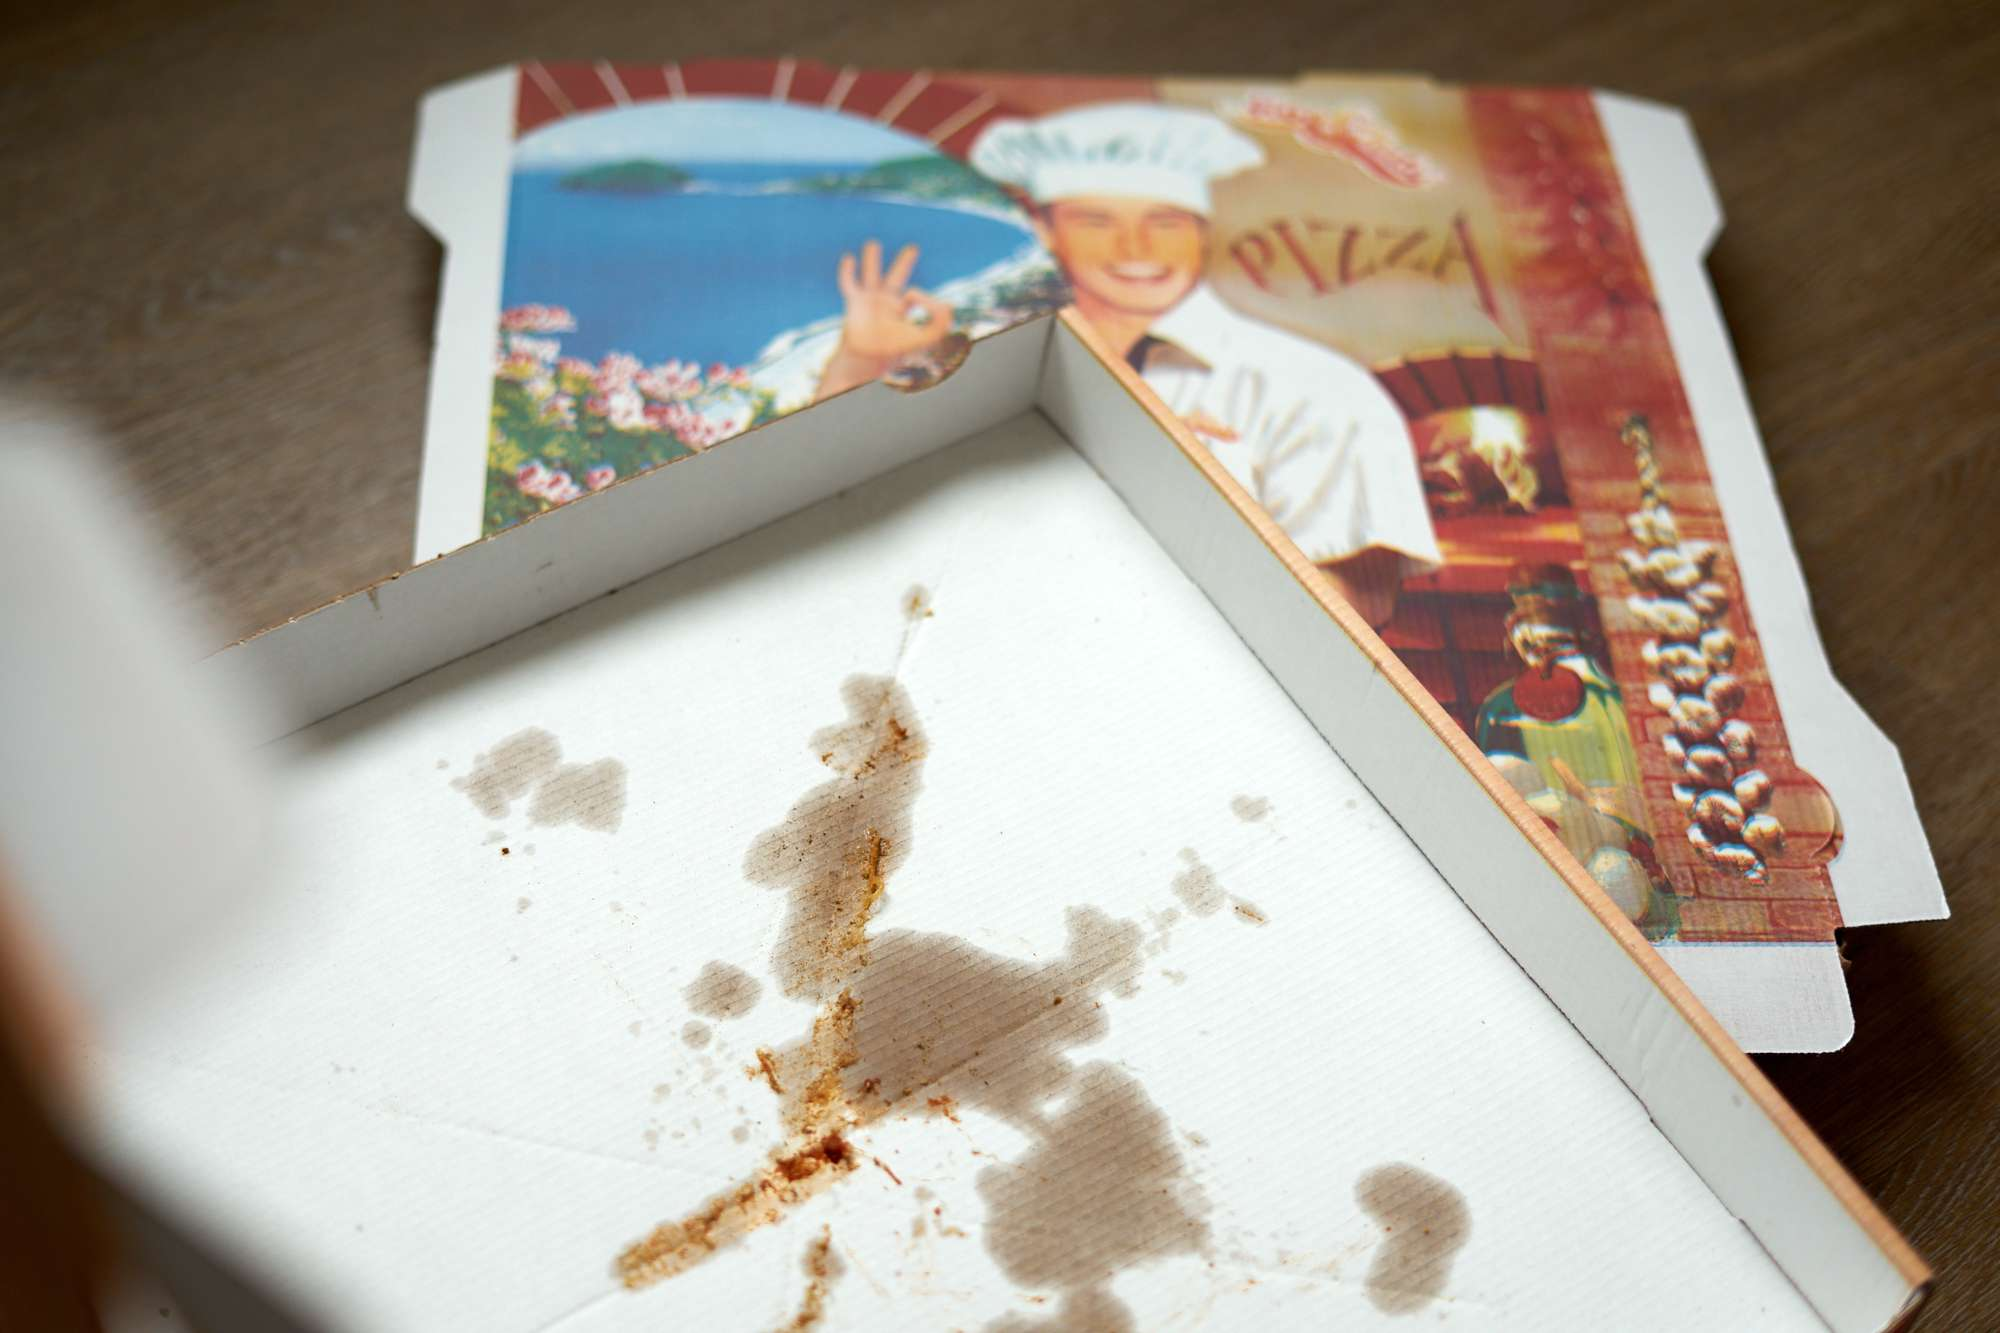 opened oily pizza box on top of closed pizza box with chef branding